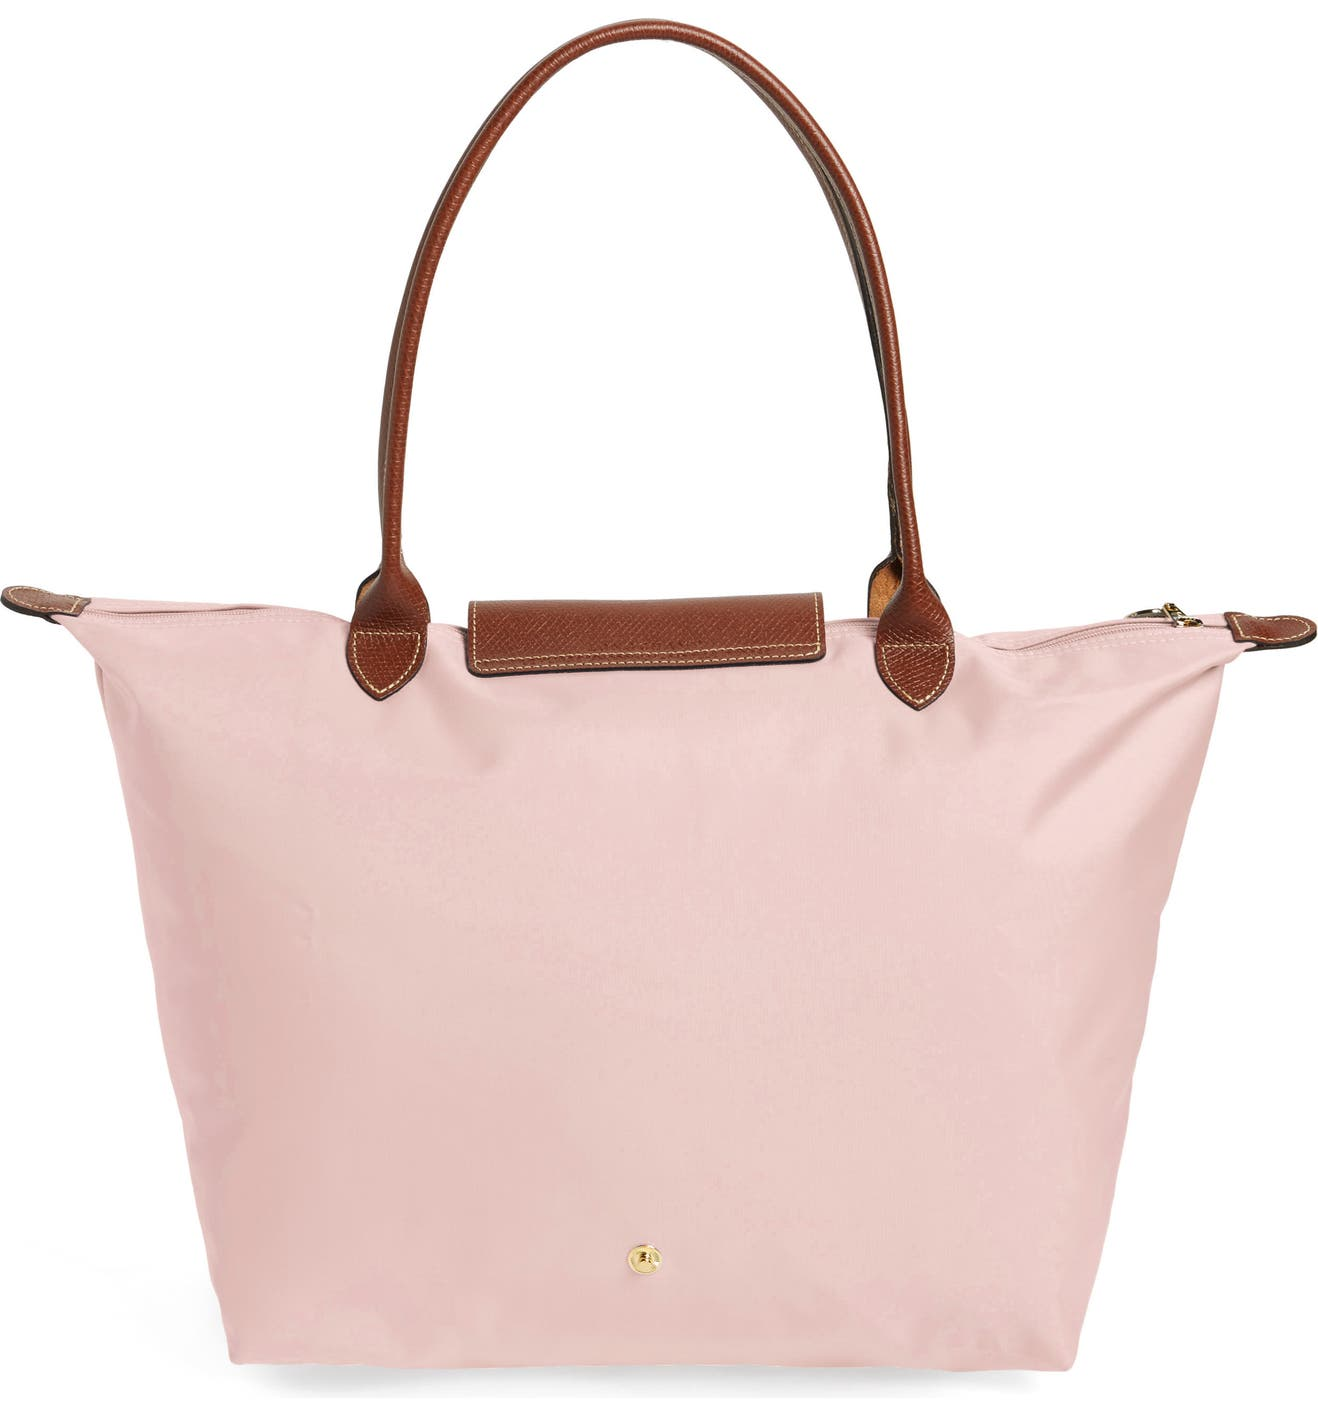 Longchamp Large Le Pliage Tote  bb34caa0a0895